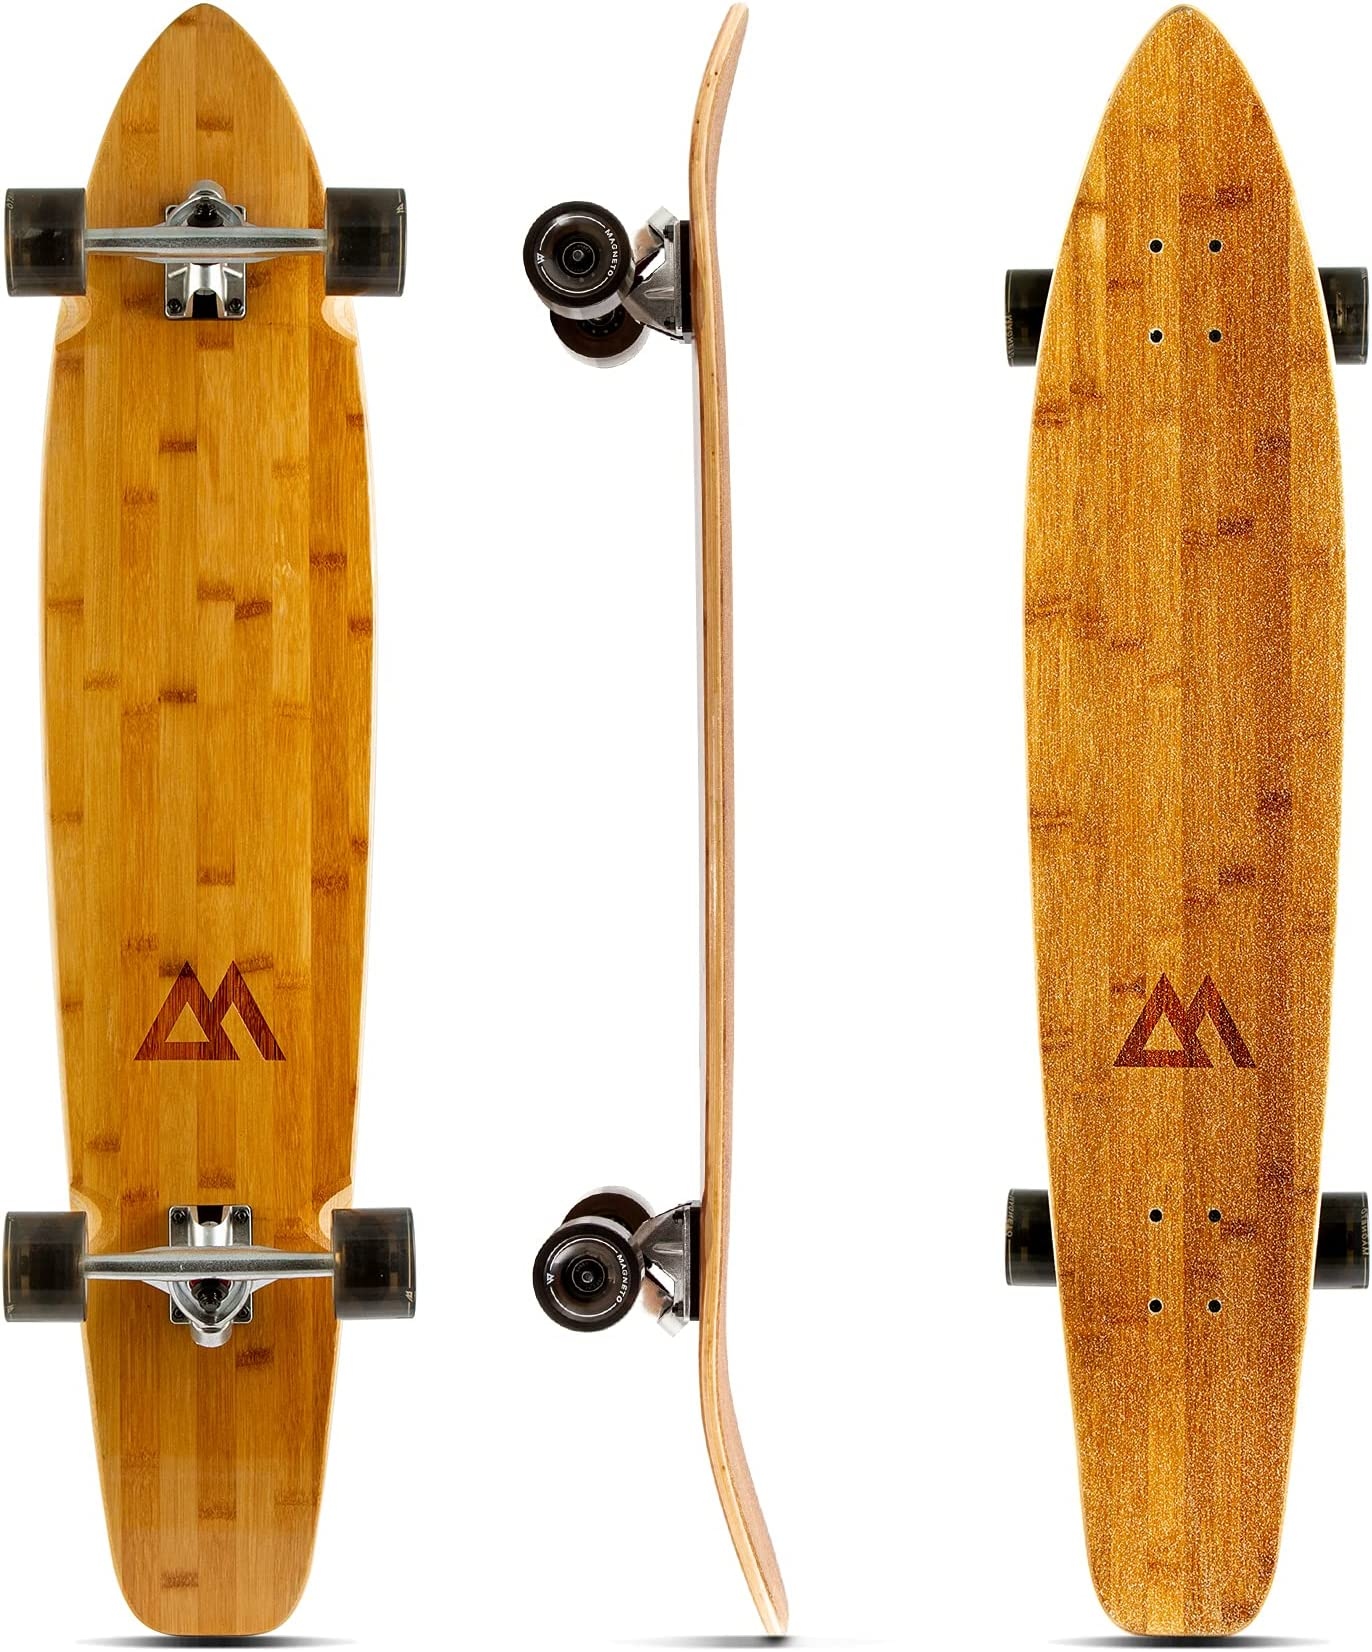 Magneto 44 inch Kicktail Cruiser Longboard Skateboard | Bamboo and Hard Maple Deck | Made for Adults, Teens, and Kids …